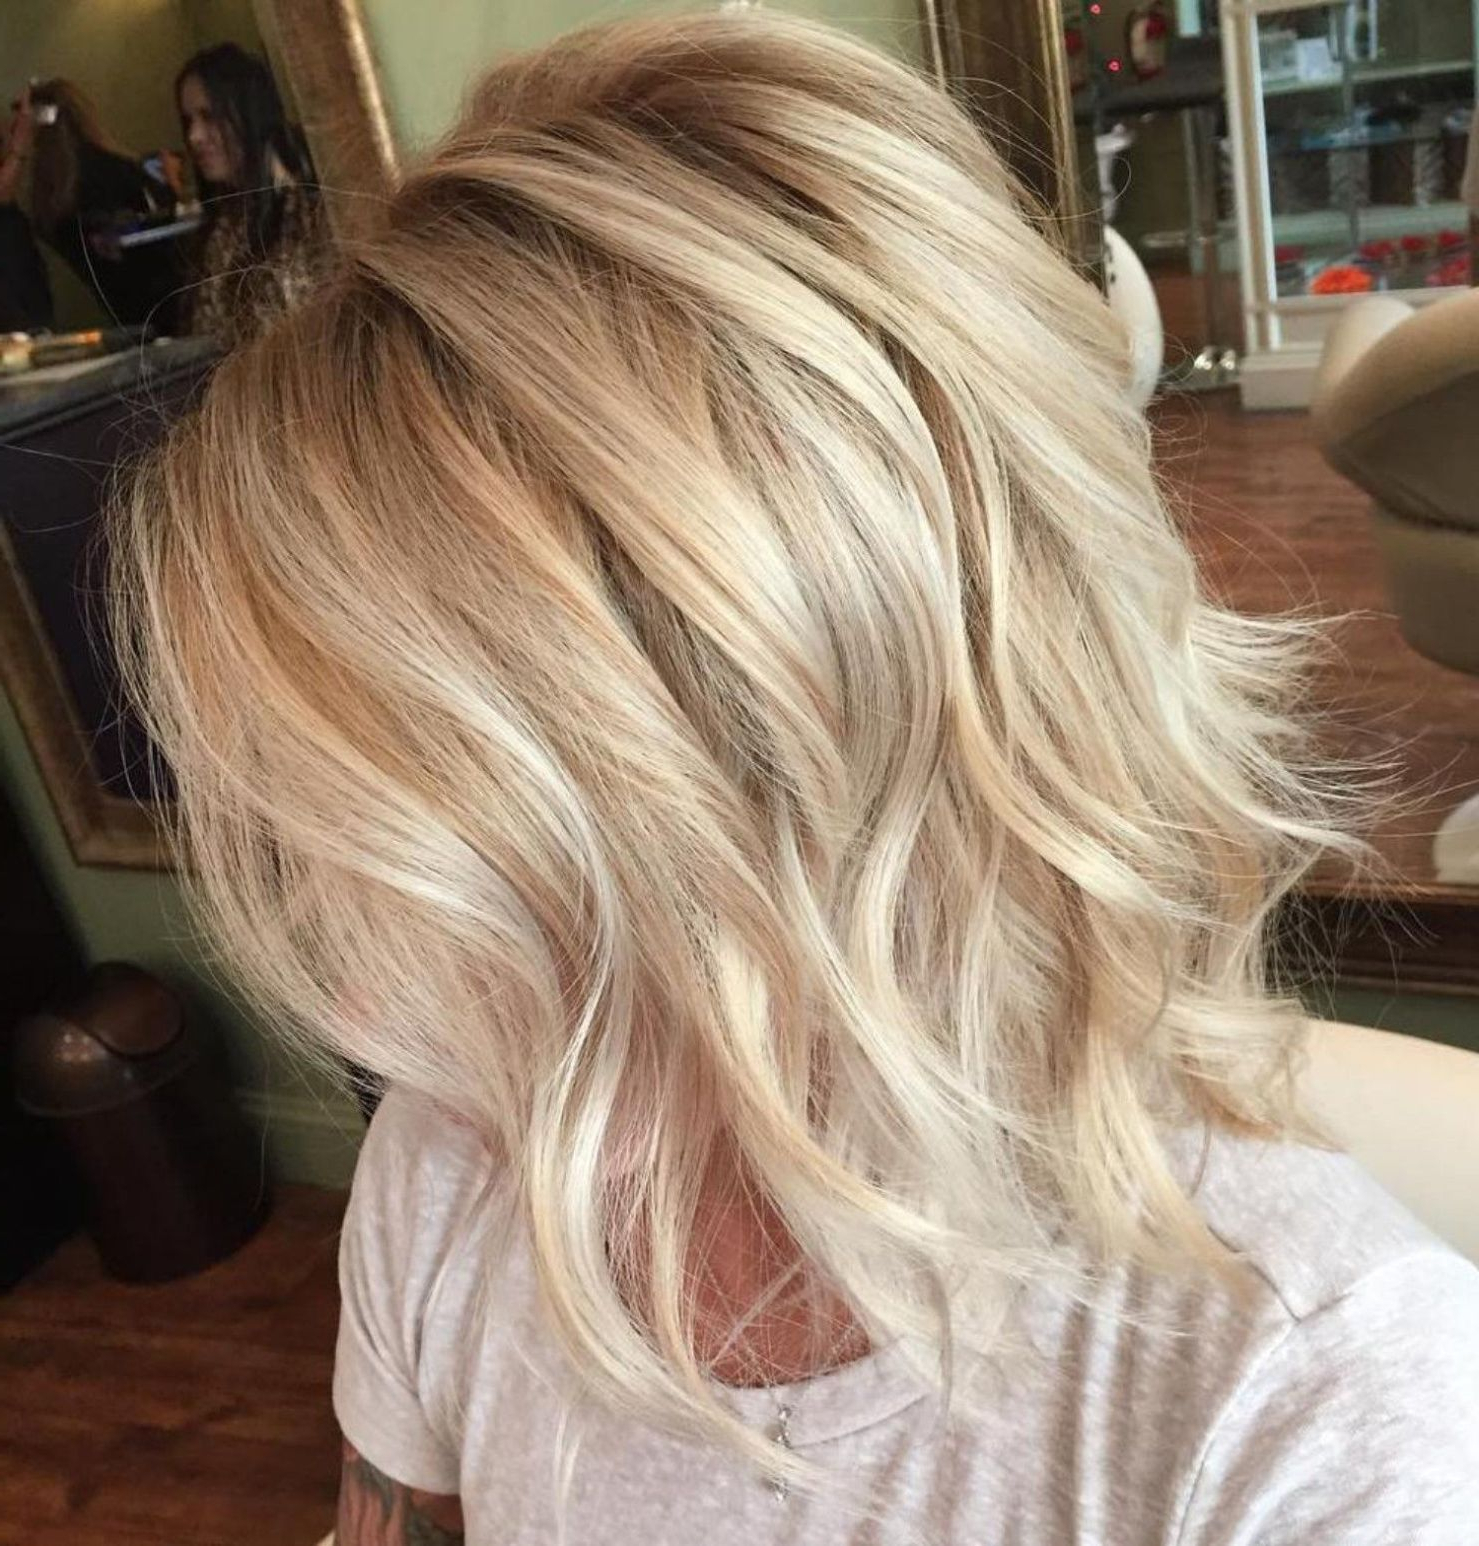 2019 Pretty Wavy Blonde Shag Haircuts With Pin On Hair (View 13 of 20)